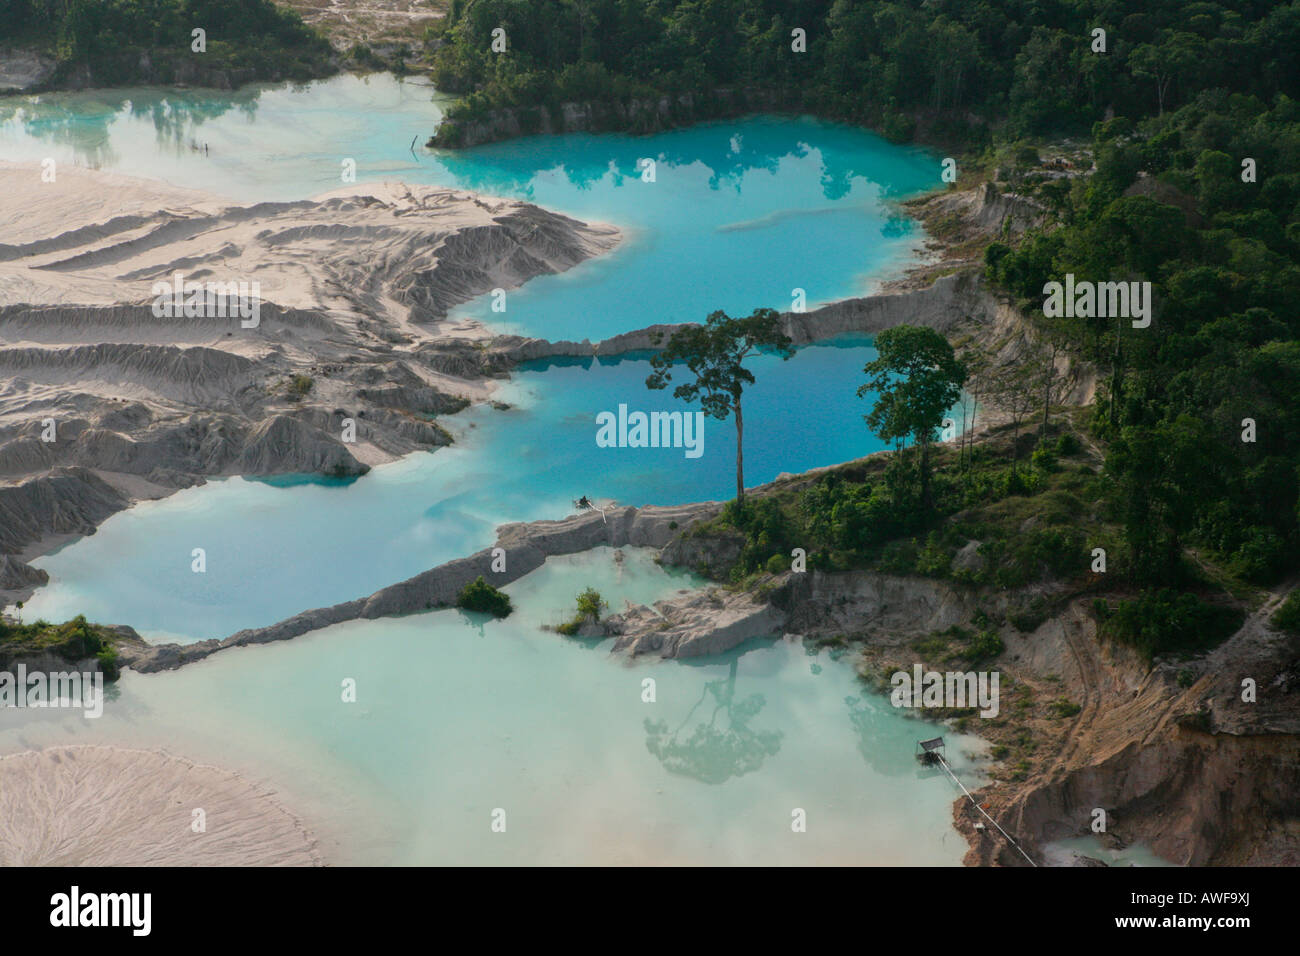 Aerial shot, silting the rainforest after mining, Guyana, South America Stock Photo